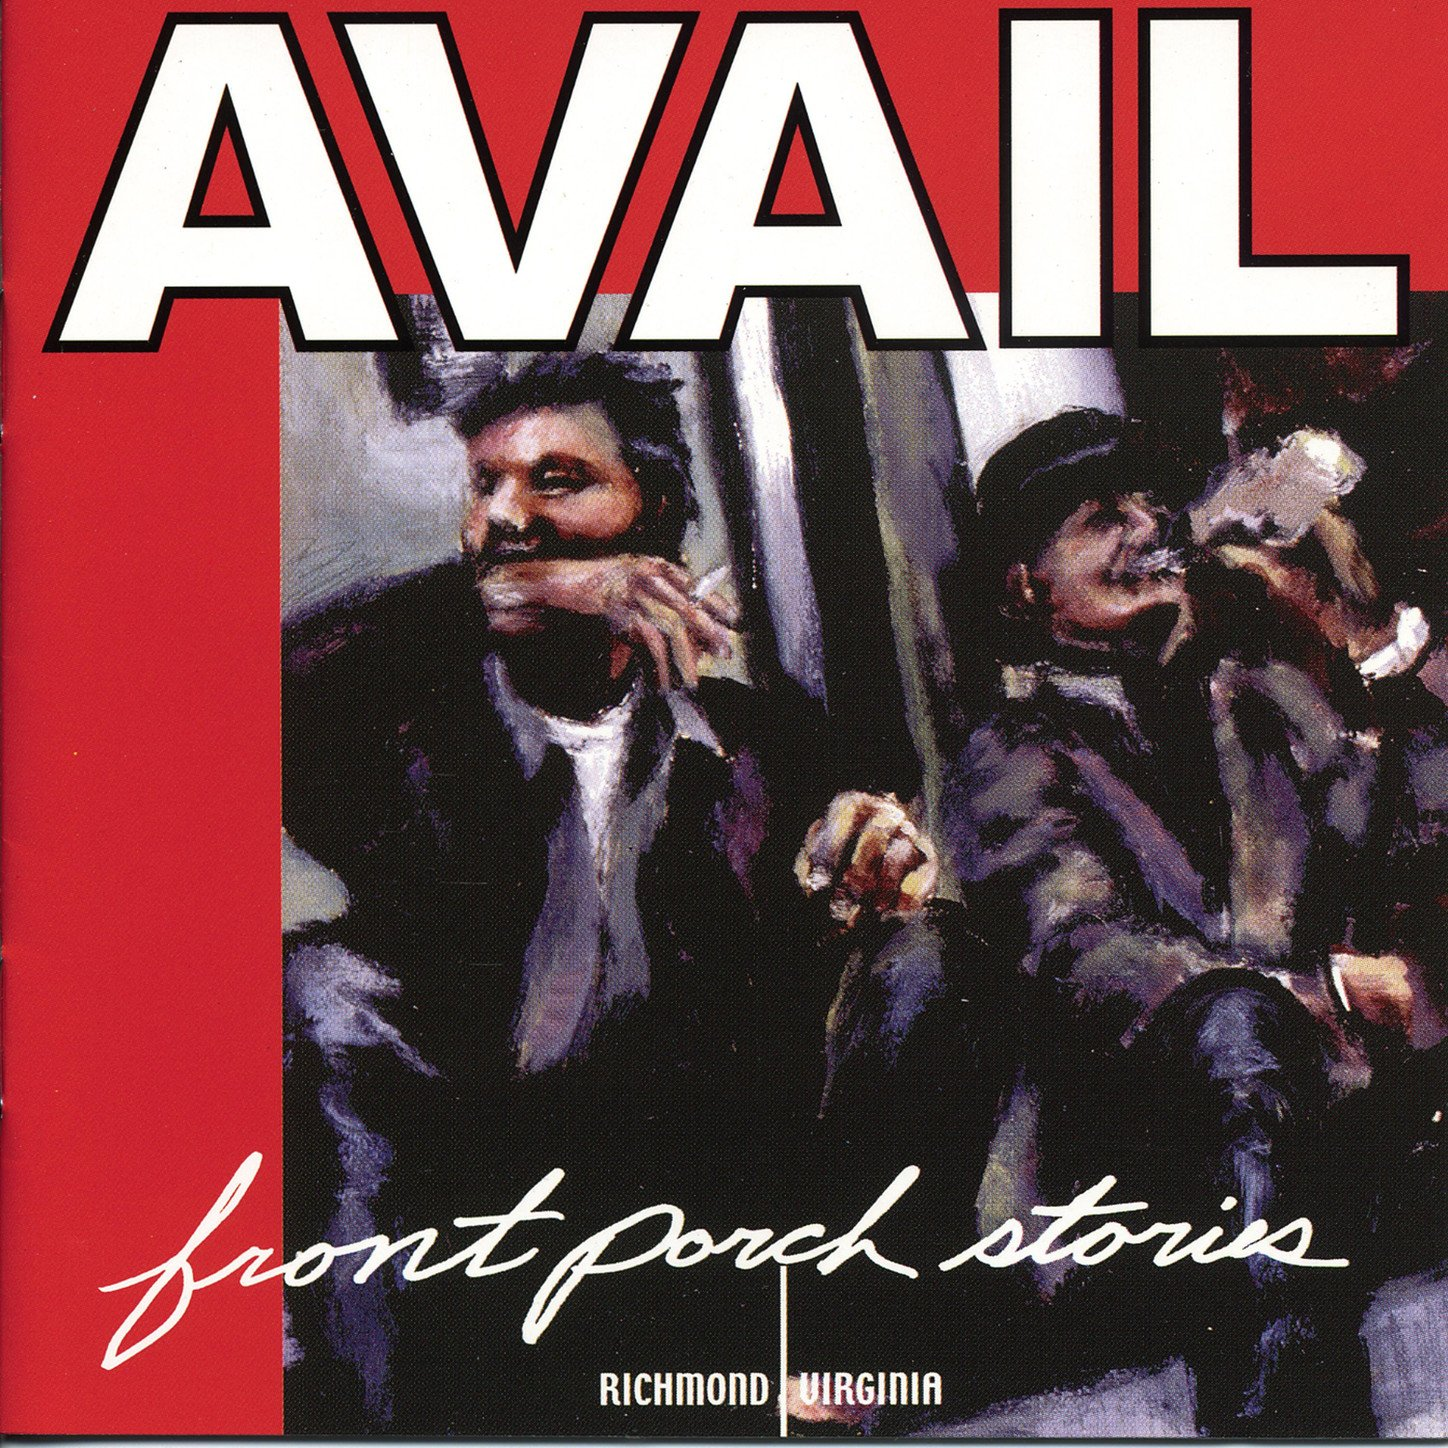 Avail - Front Porch Stories (2002) [FLAC] Download